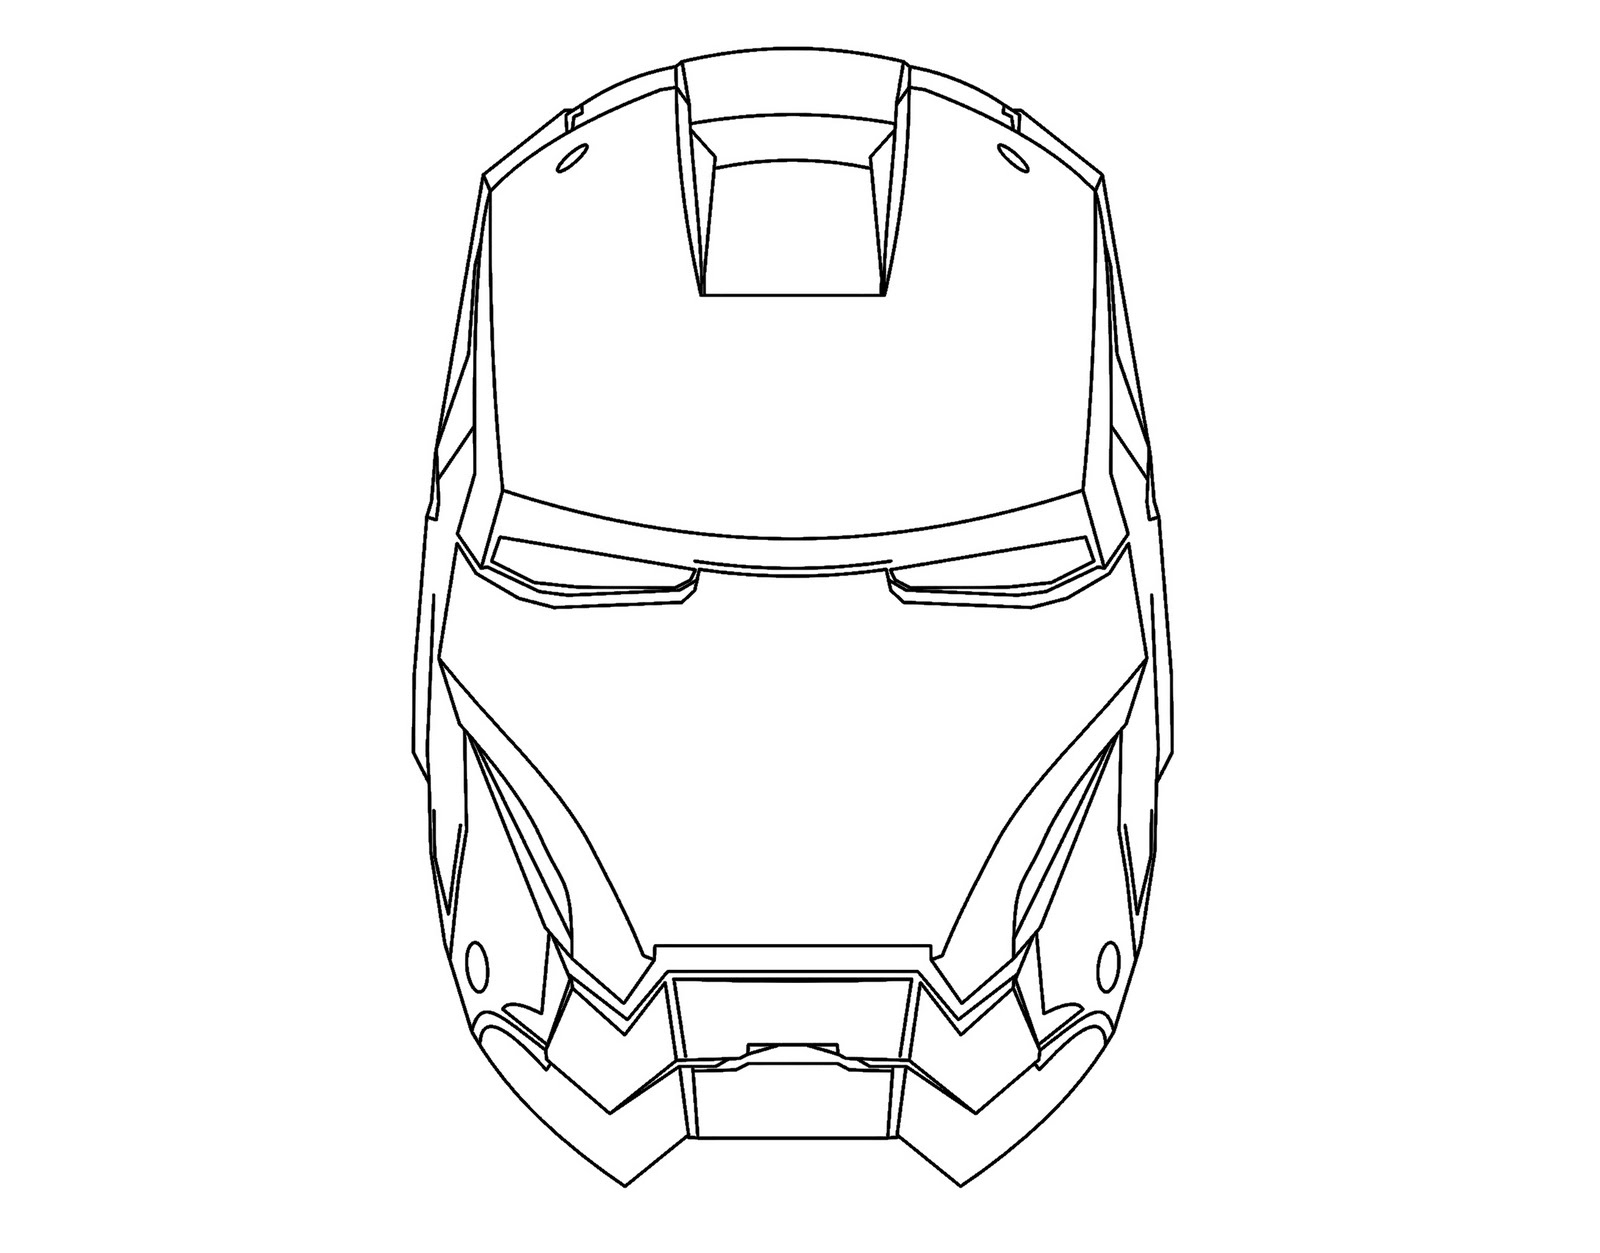 iron man cartoon coloring pages - drawing iron man mask coloring color area